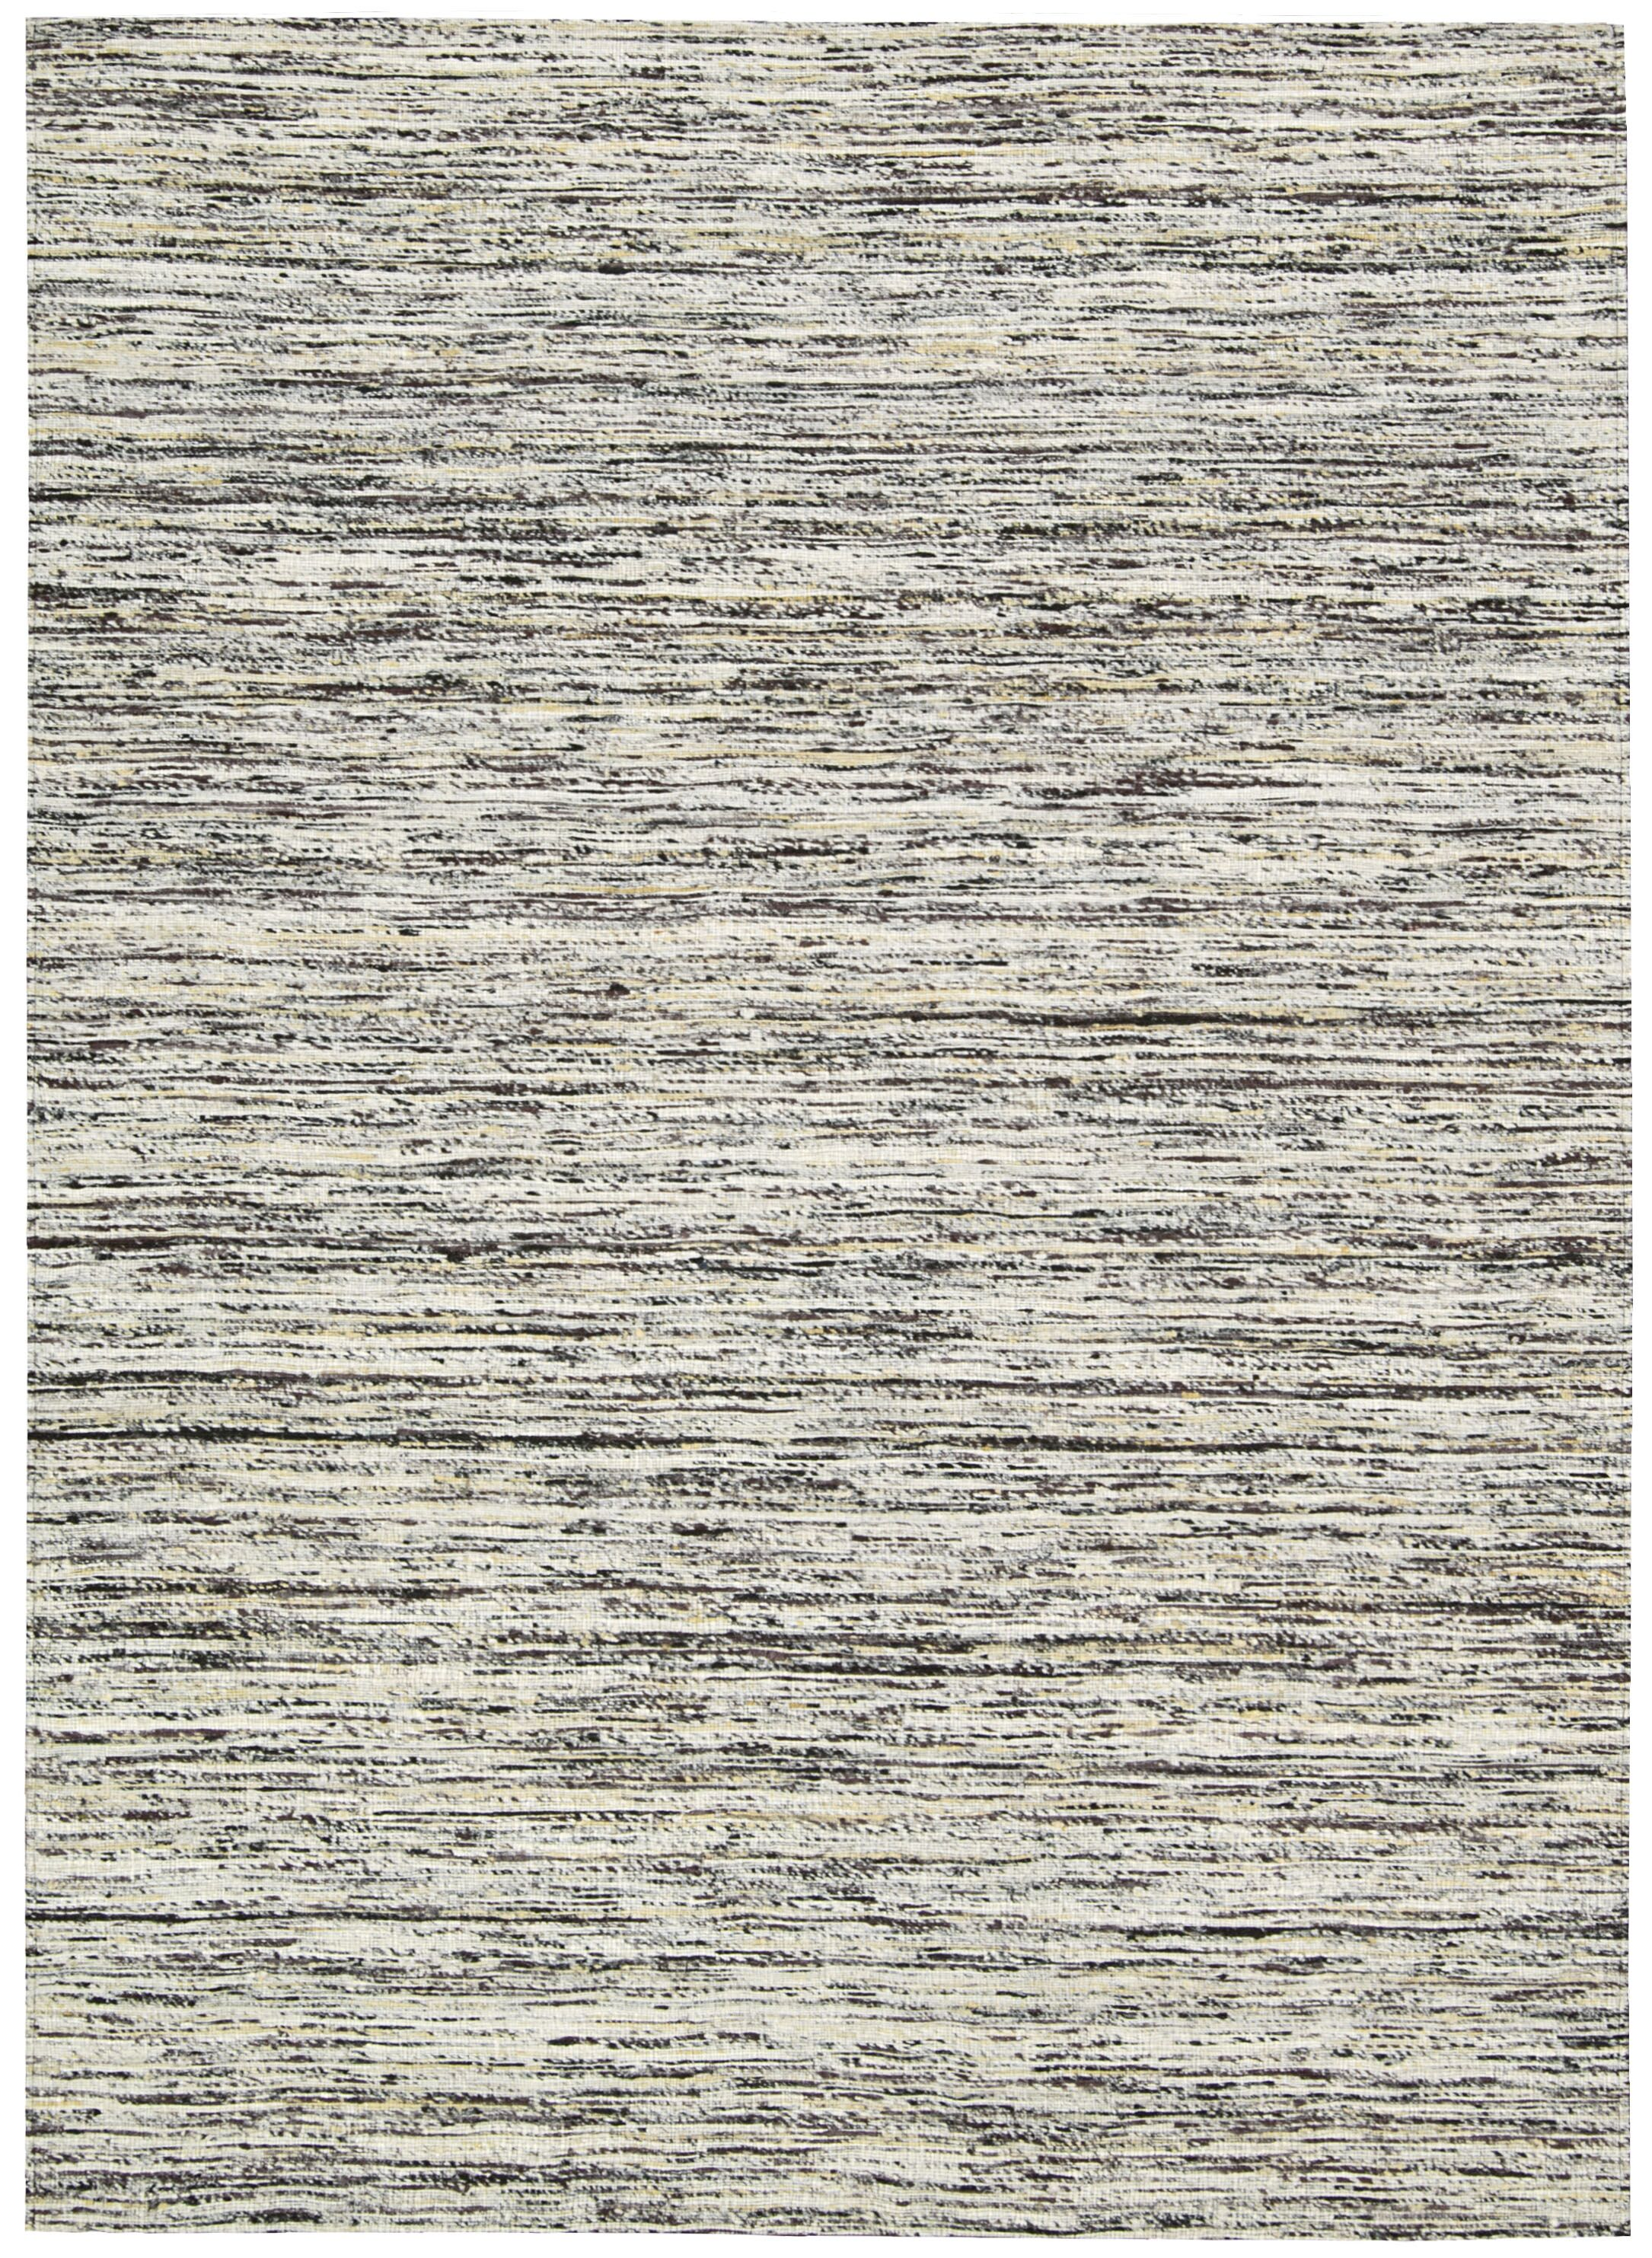 Zahra Hand-Woven Cobble Stone Area Rug Rug Size: Rectangle 4' x 6'